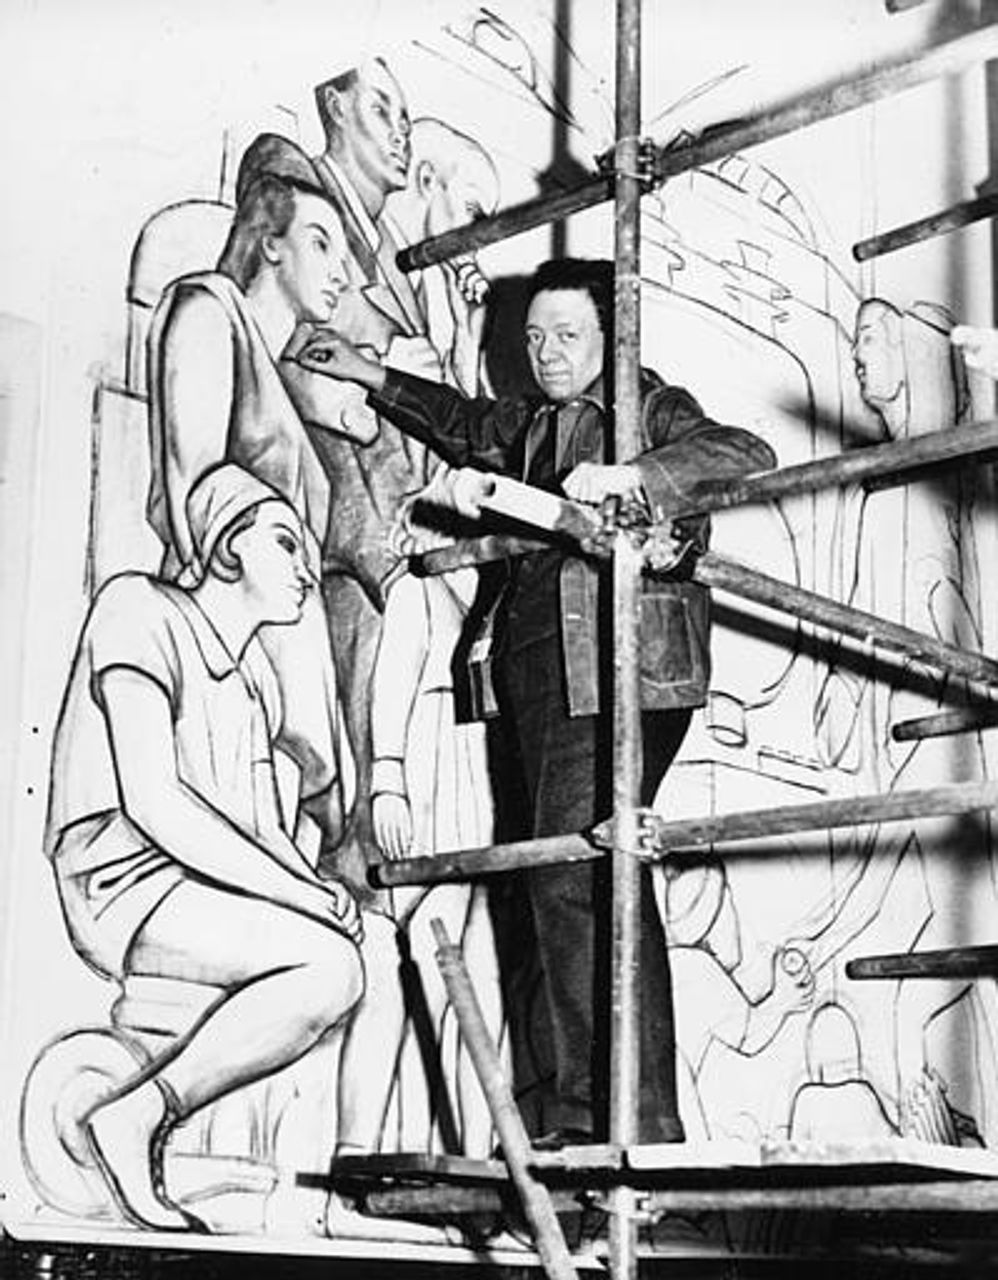 Rivera working on the Man at the Crossroads mural in the Rockefeller Center